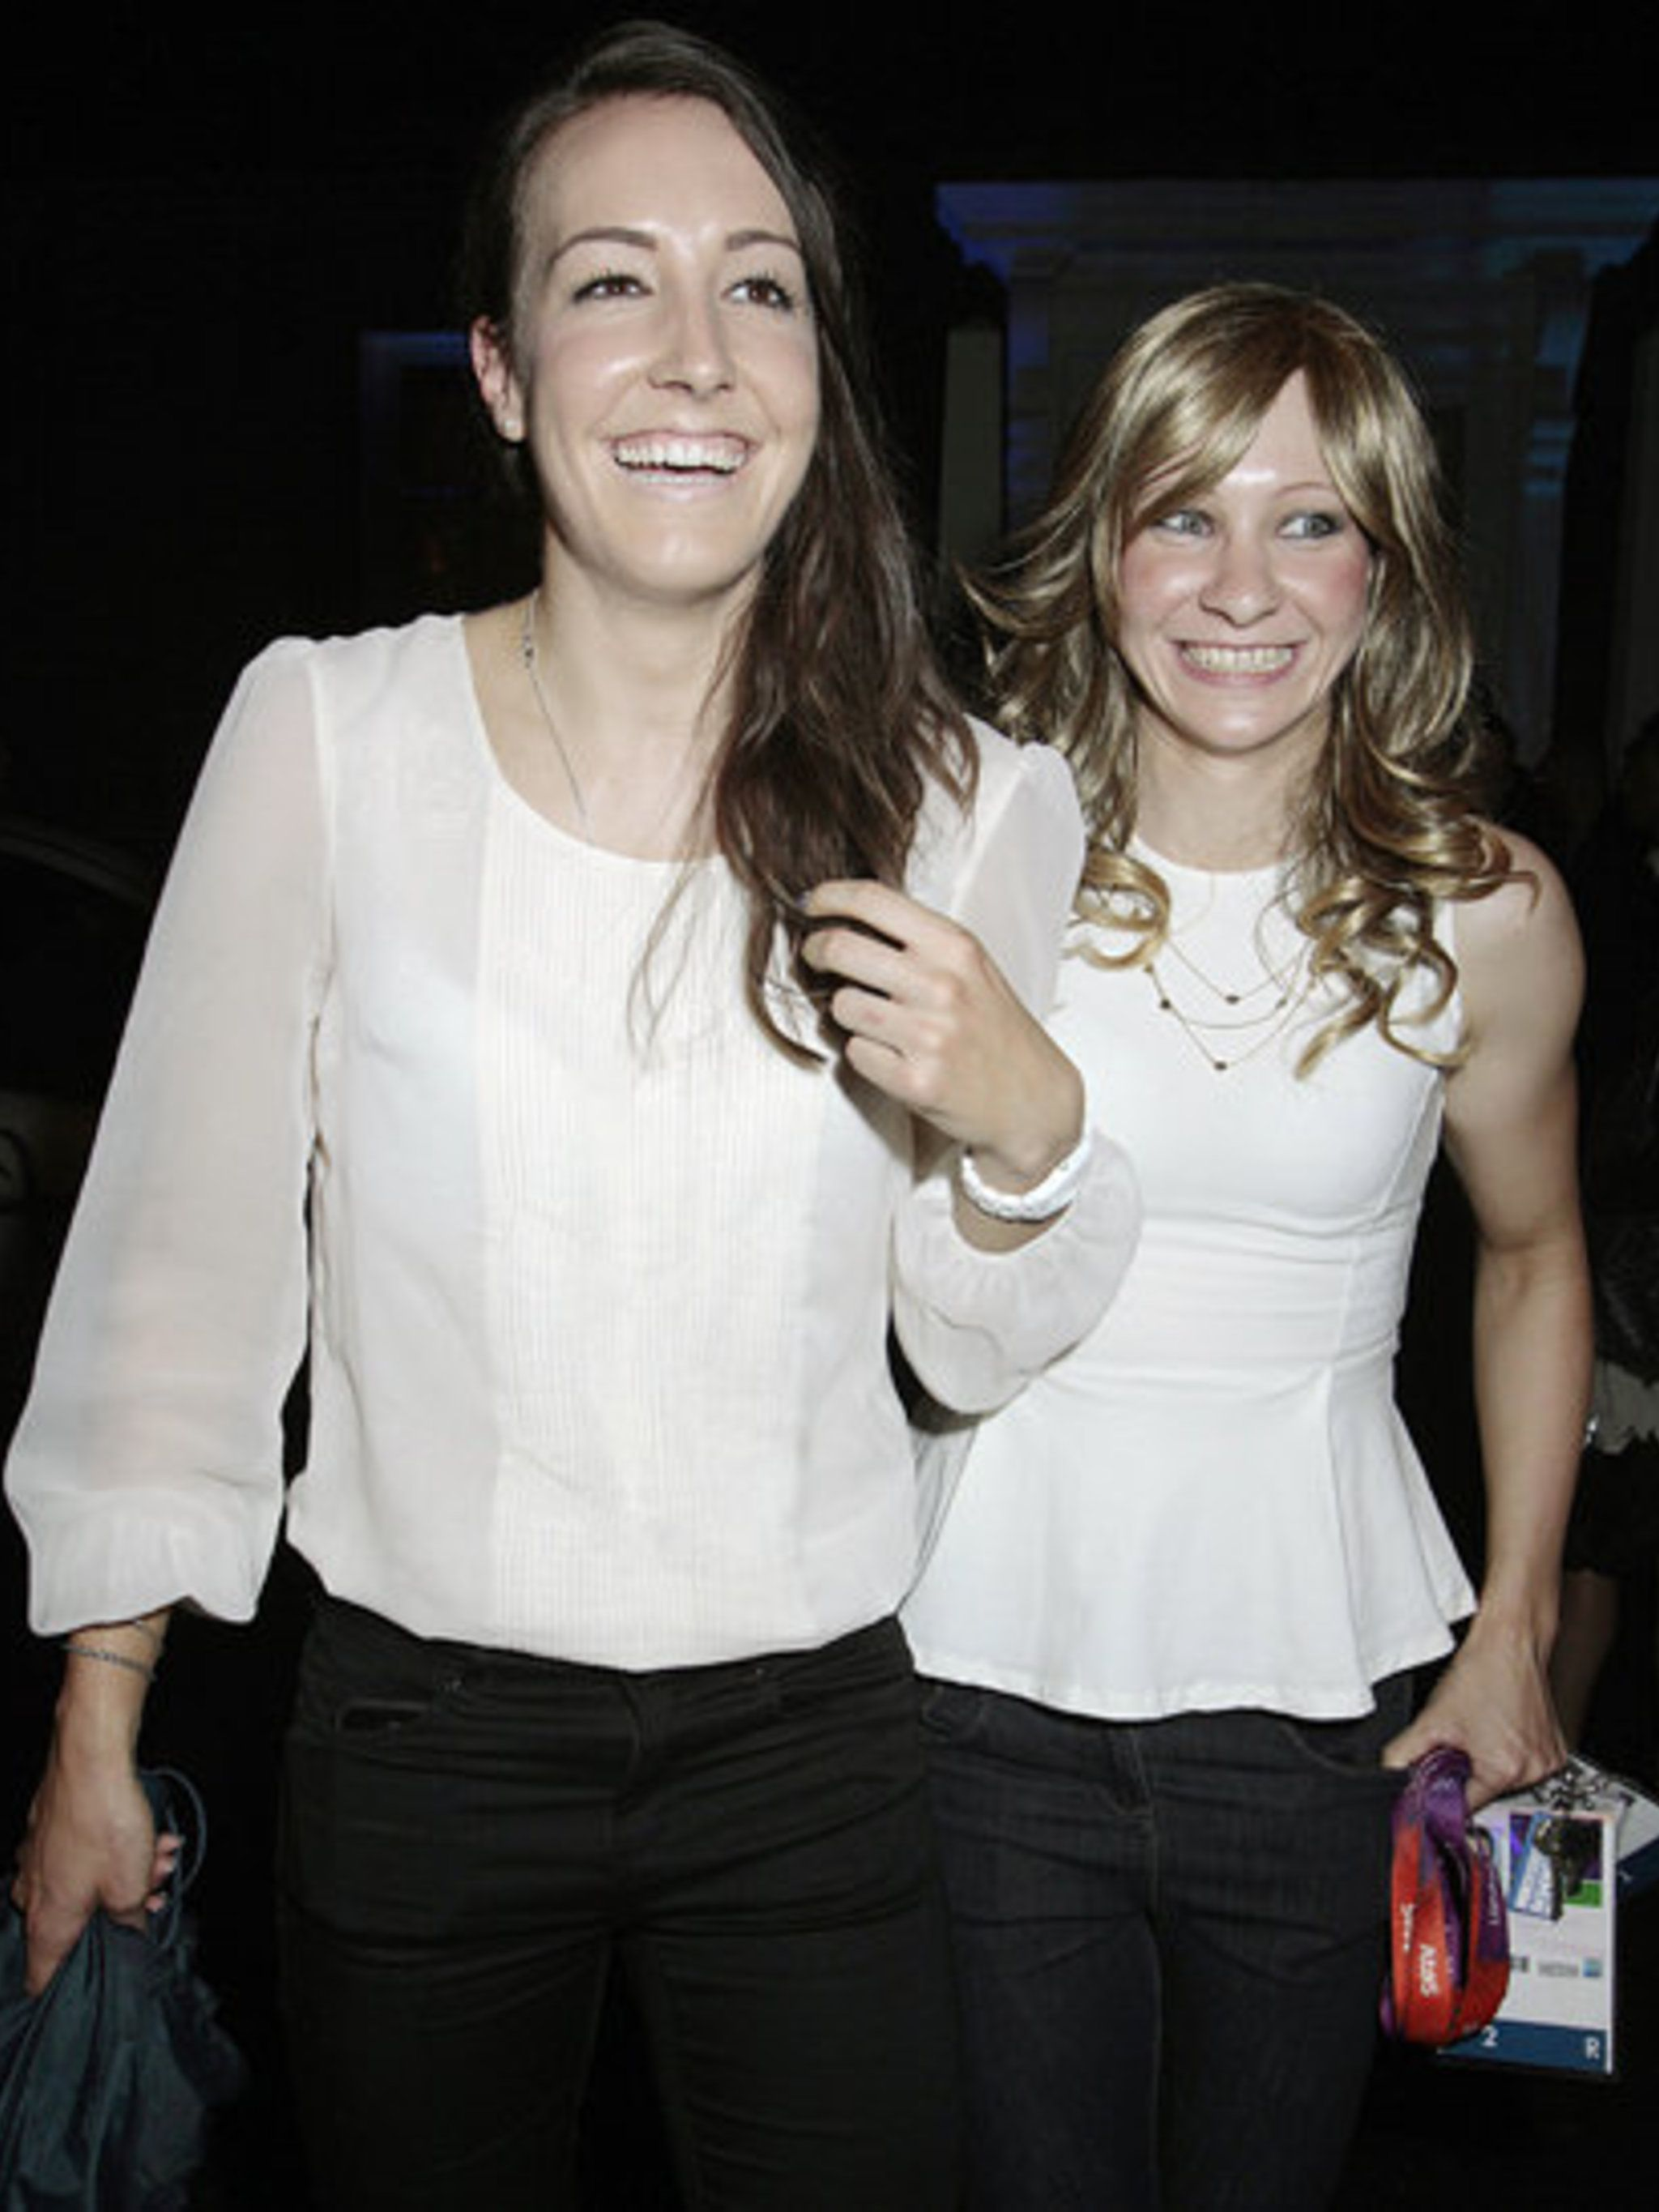 <p>Gold medal cyclists Dani King and Joanna Rowsell matched in white as they partied at Mahiki to celebrate their Olympic success in London.</p>